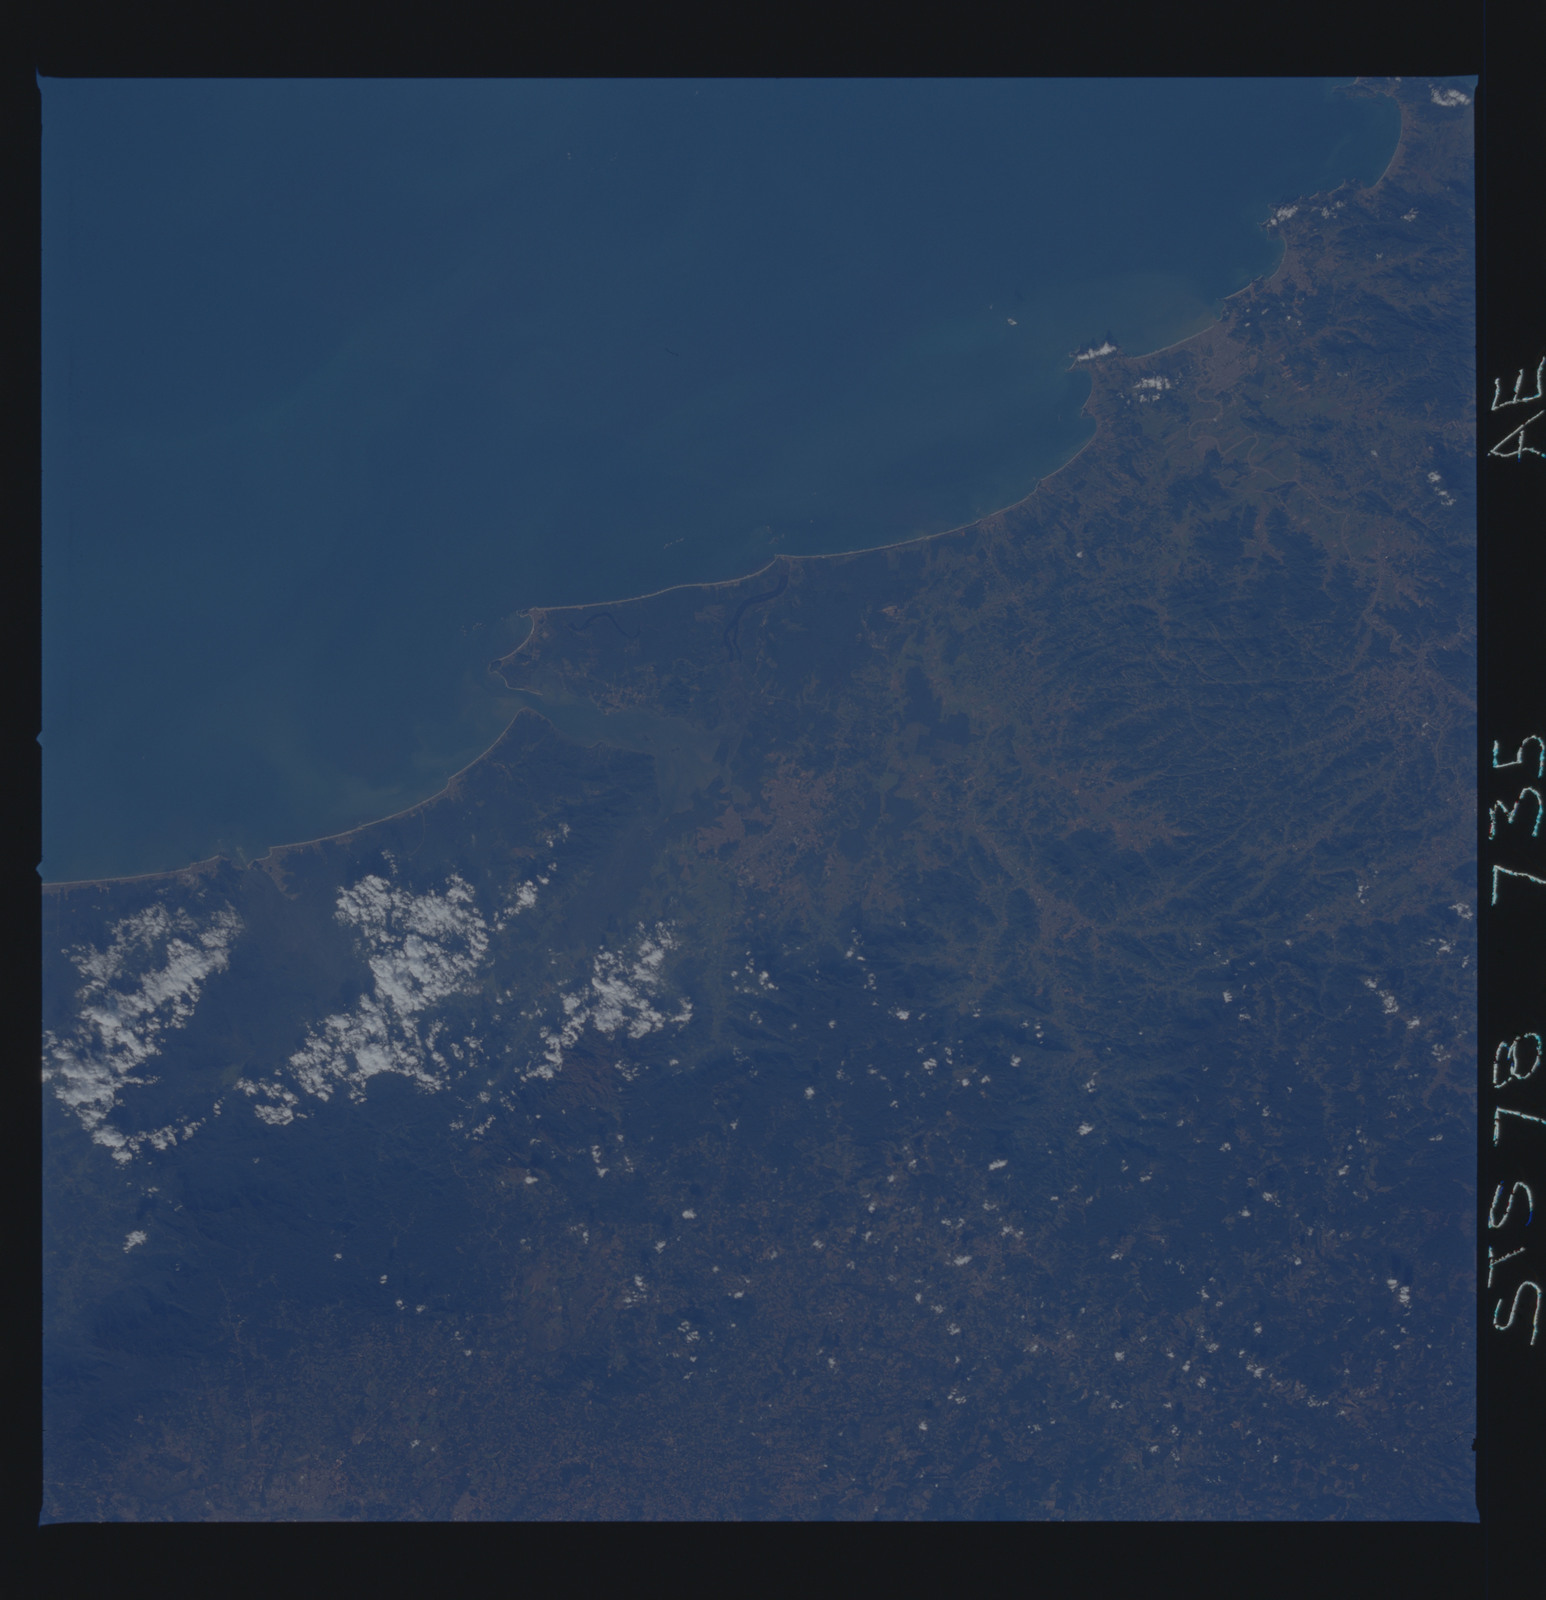 STS078-735-000AE - STS-078 - Earth observations taken from Space Shuttle Columbia during STS-78 mission